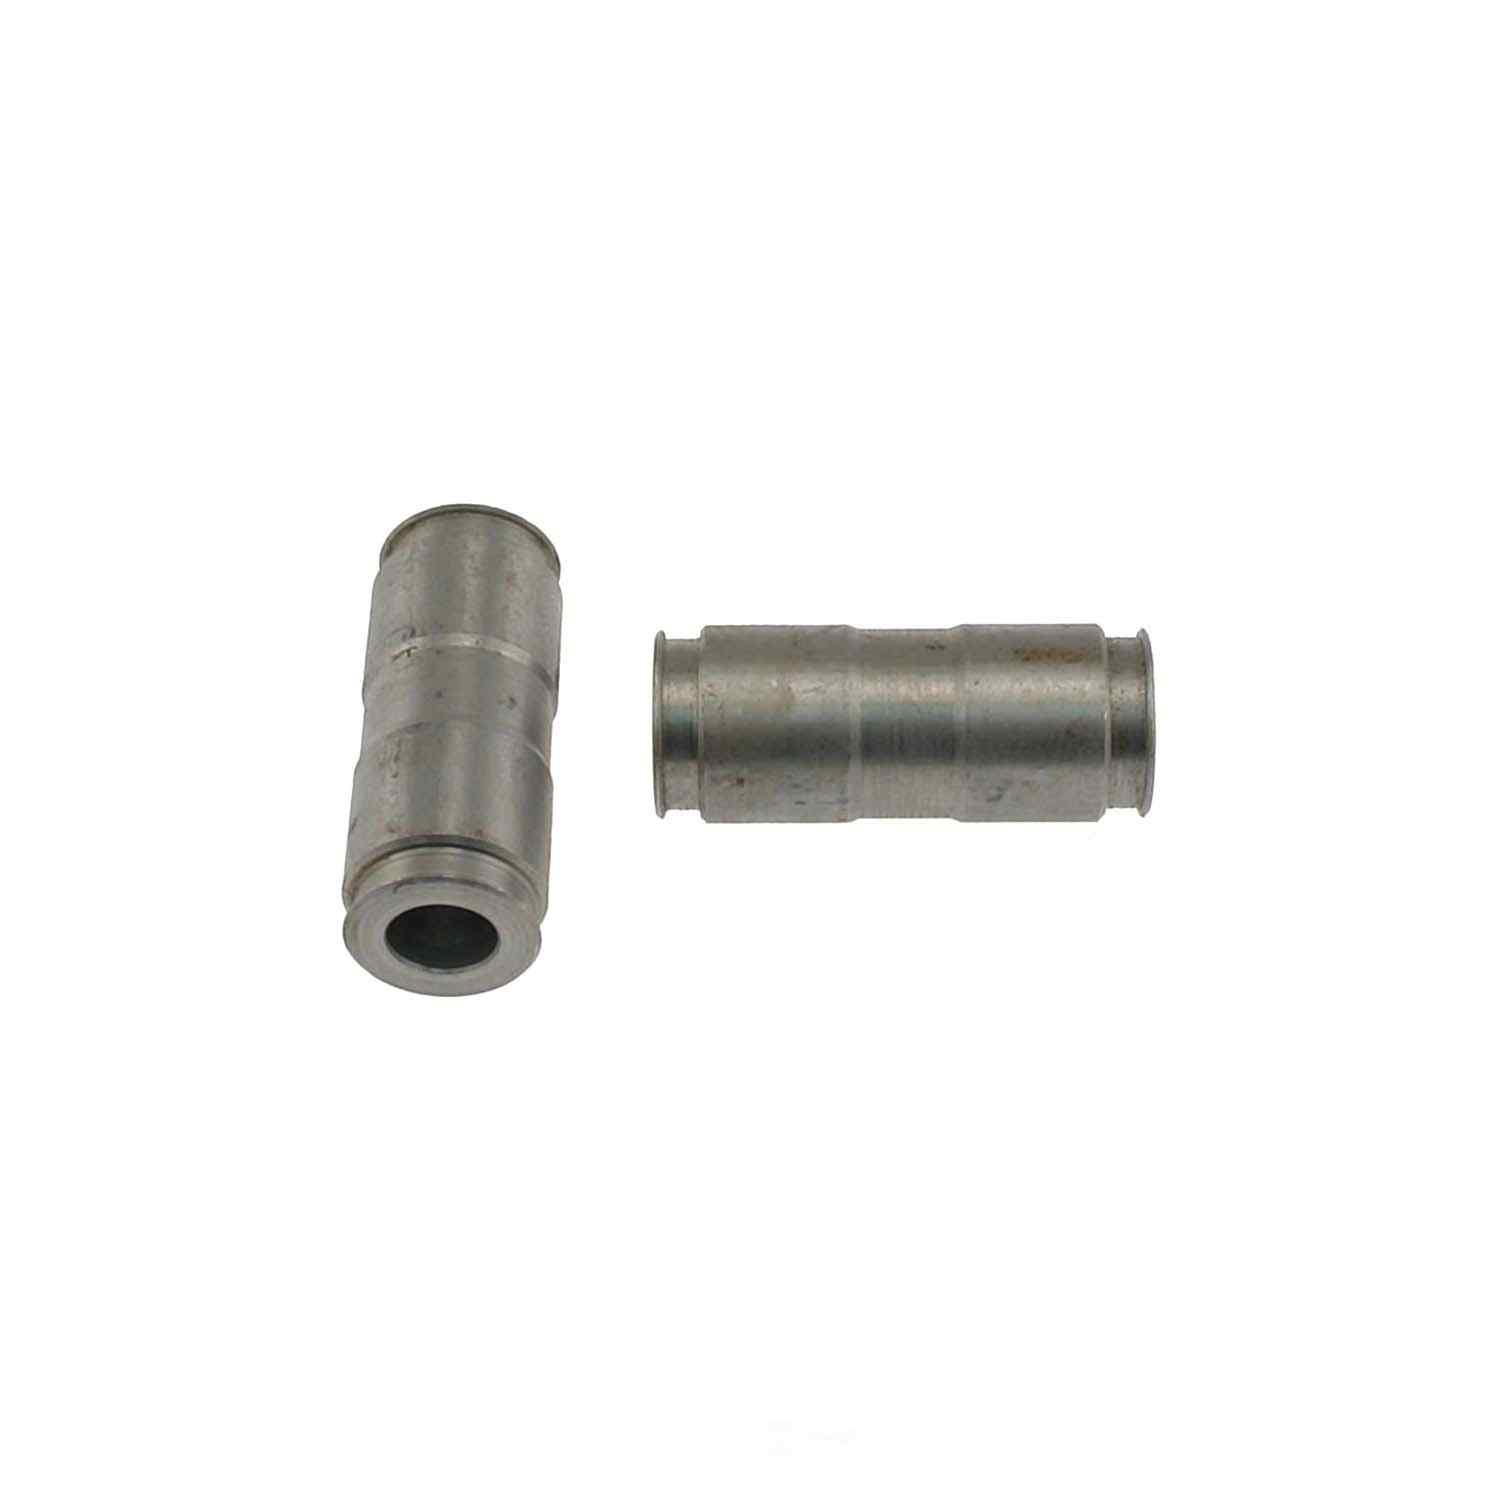 Brake Ware House Your One Stop Shop Parts Store System Related Calipers Stainless Steel Sleeved Carlson Quality Disc Caliper Guide Pin Sleeve Rear